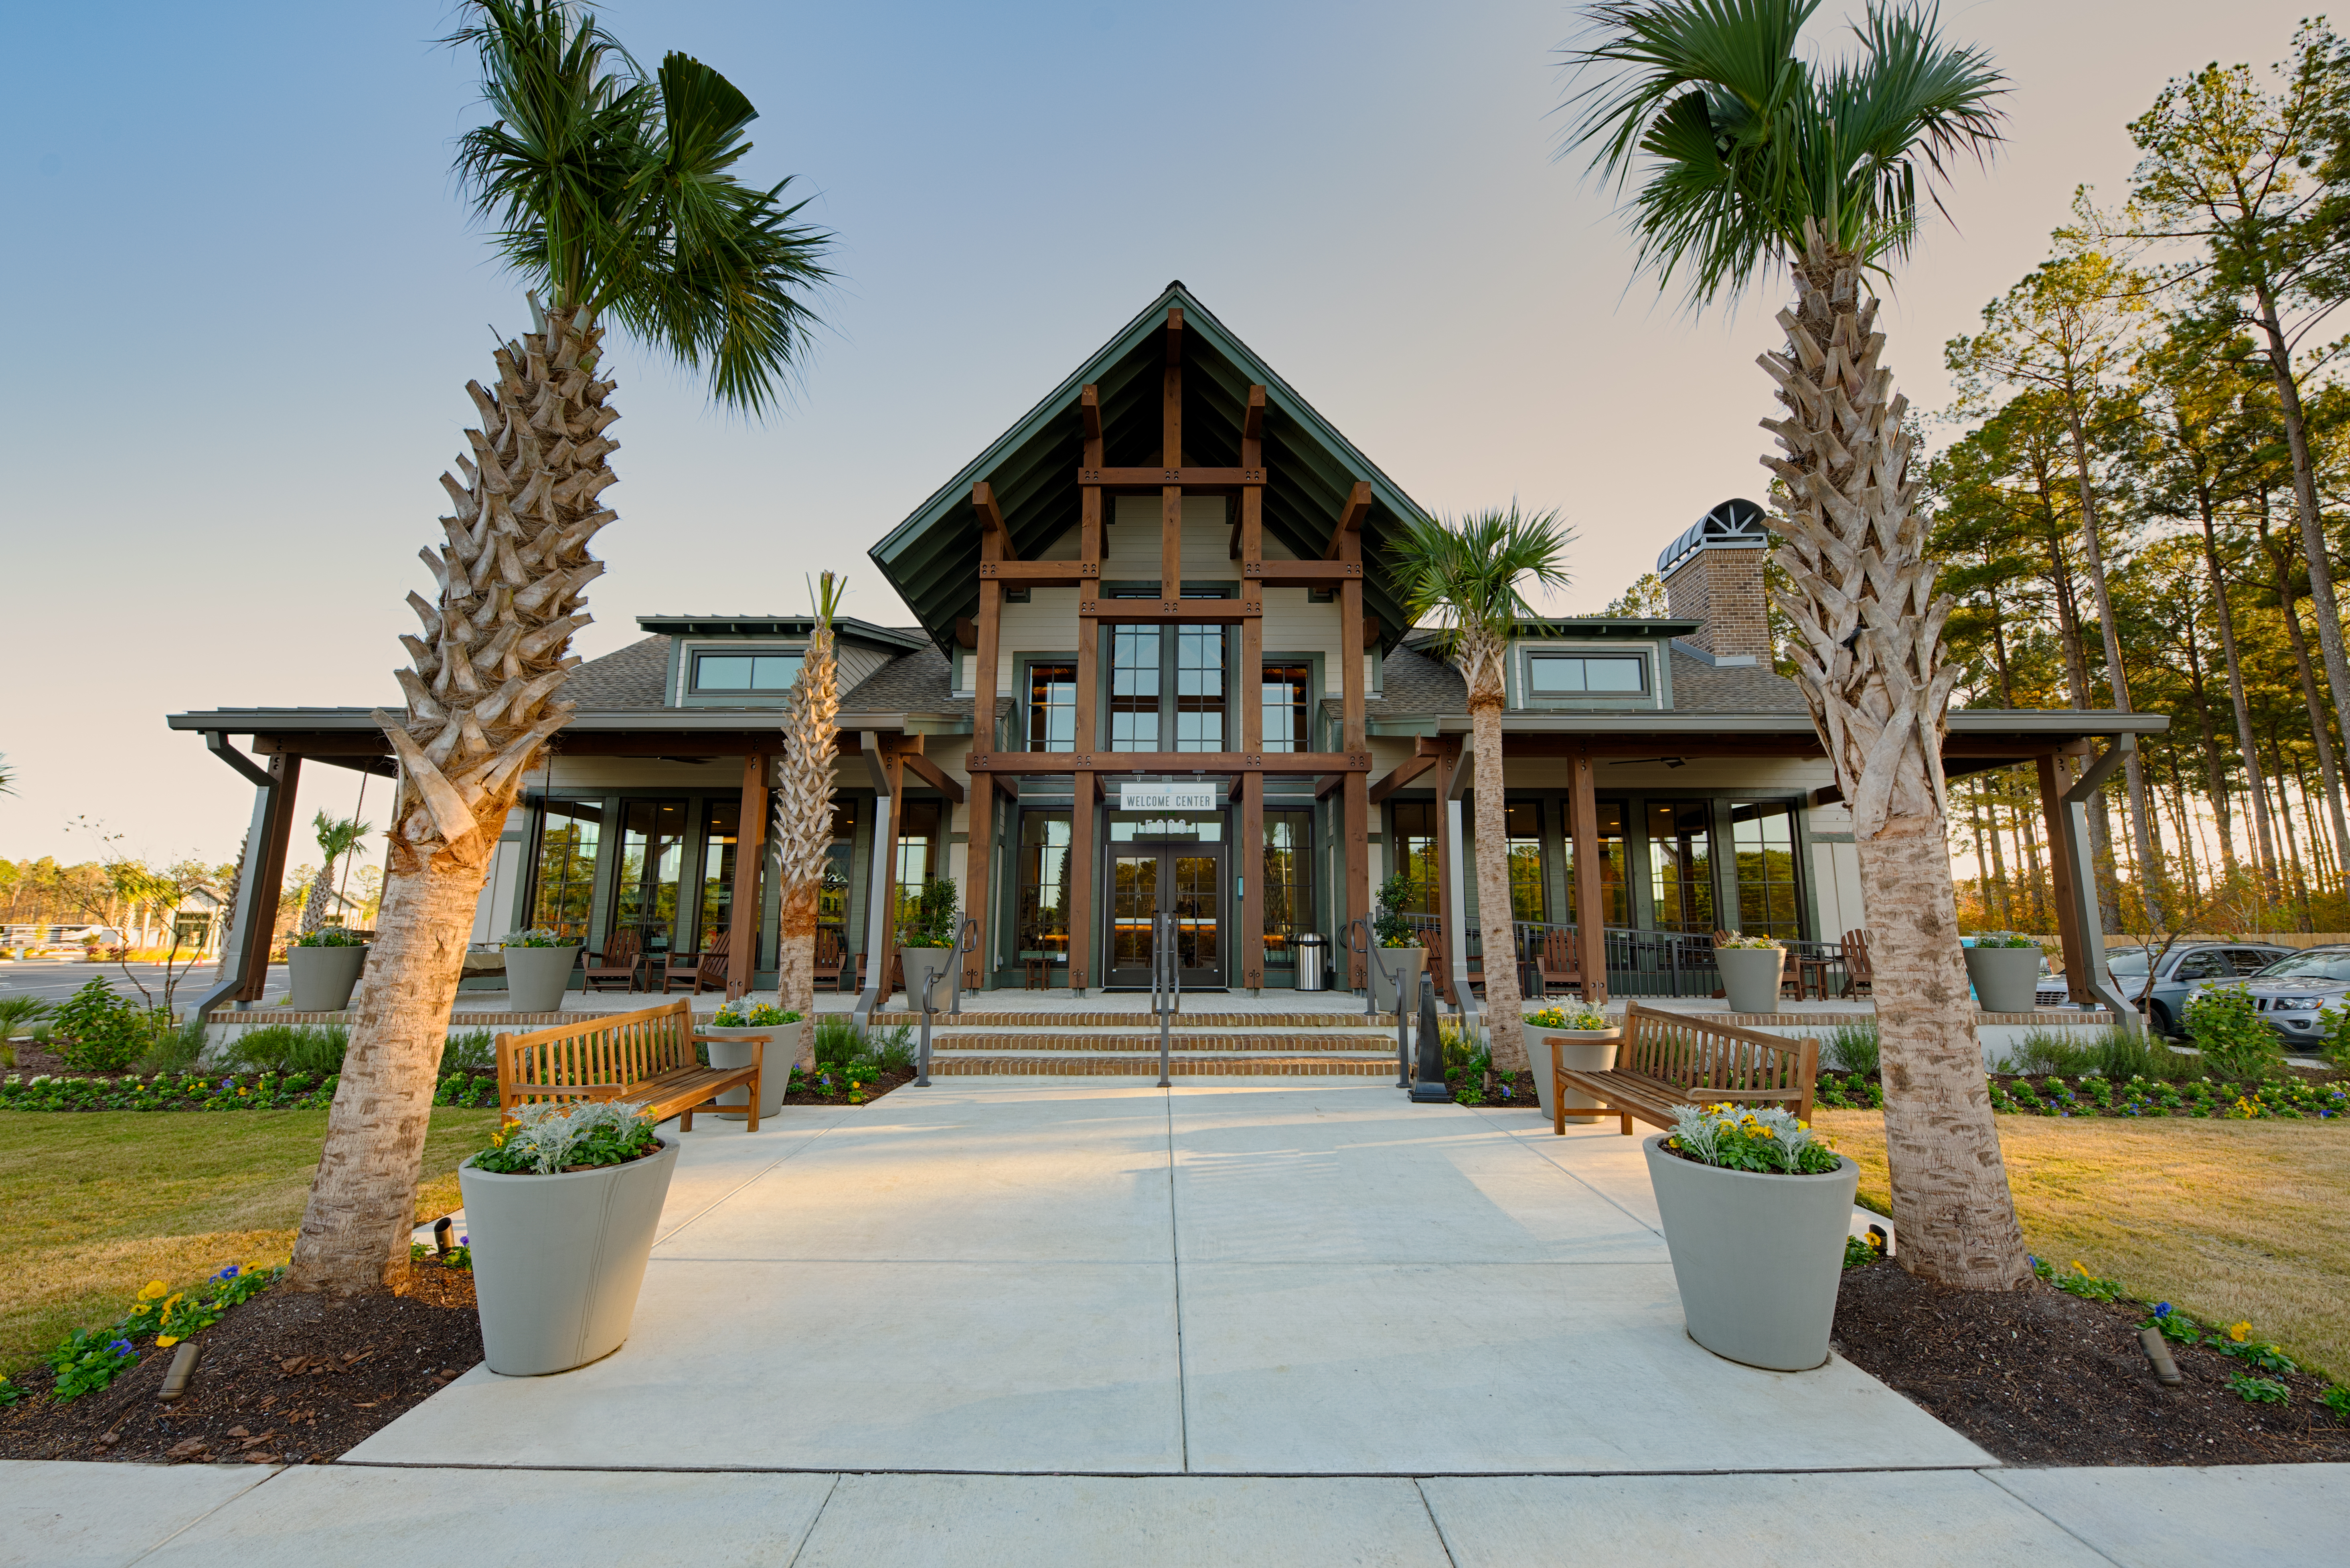 The beautiful Welcome Center and Gift Shop at Carolina Pines RV Resort near Myrtle Beach, South Carolina